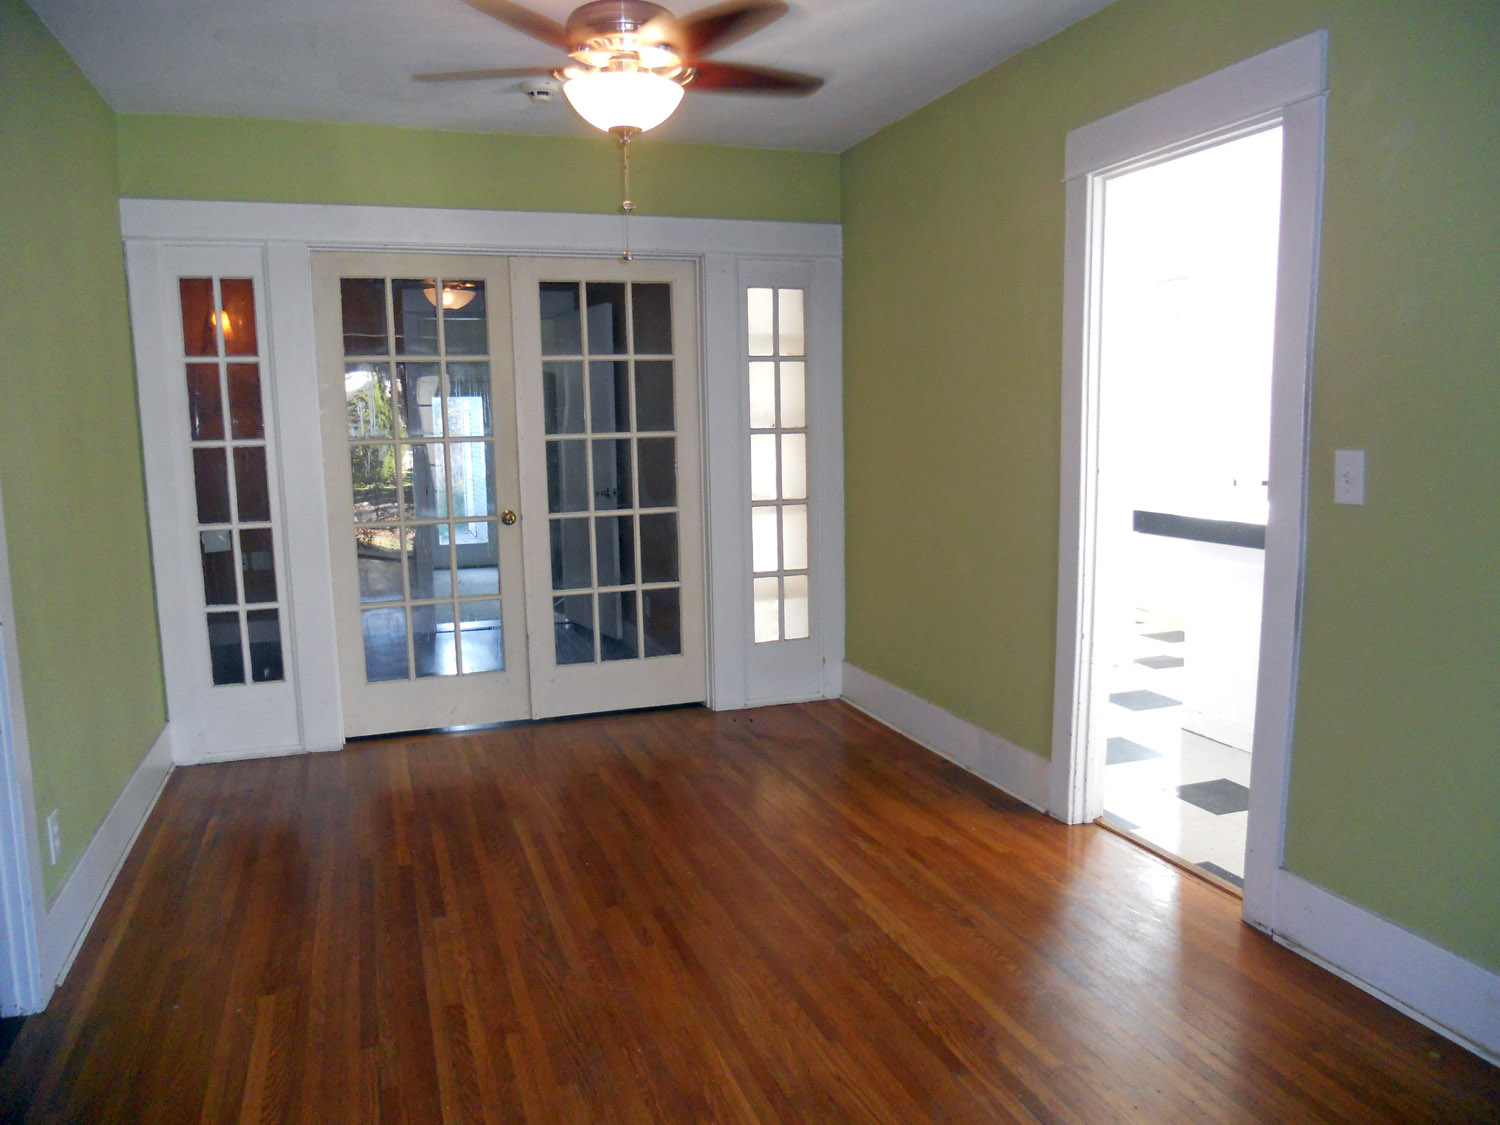 Formal Dining Room With French Doors That Separate This From The Bonus